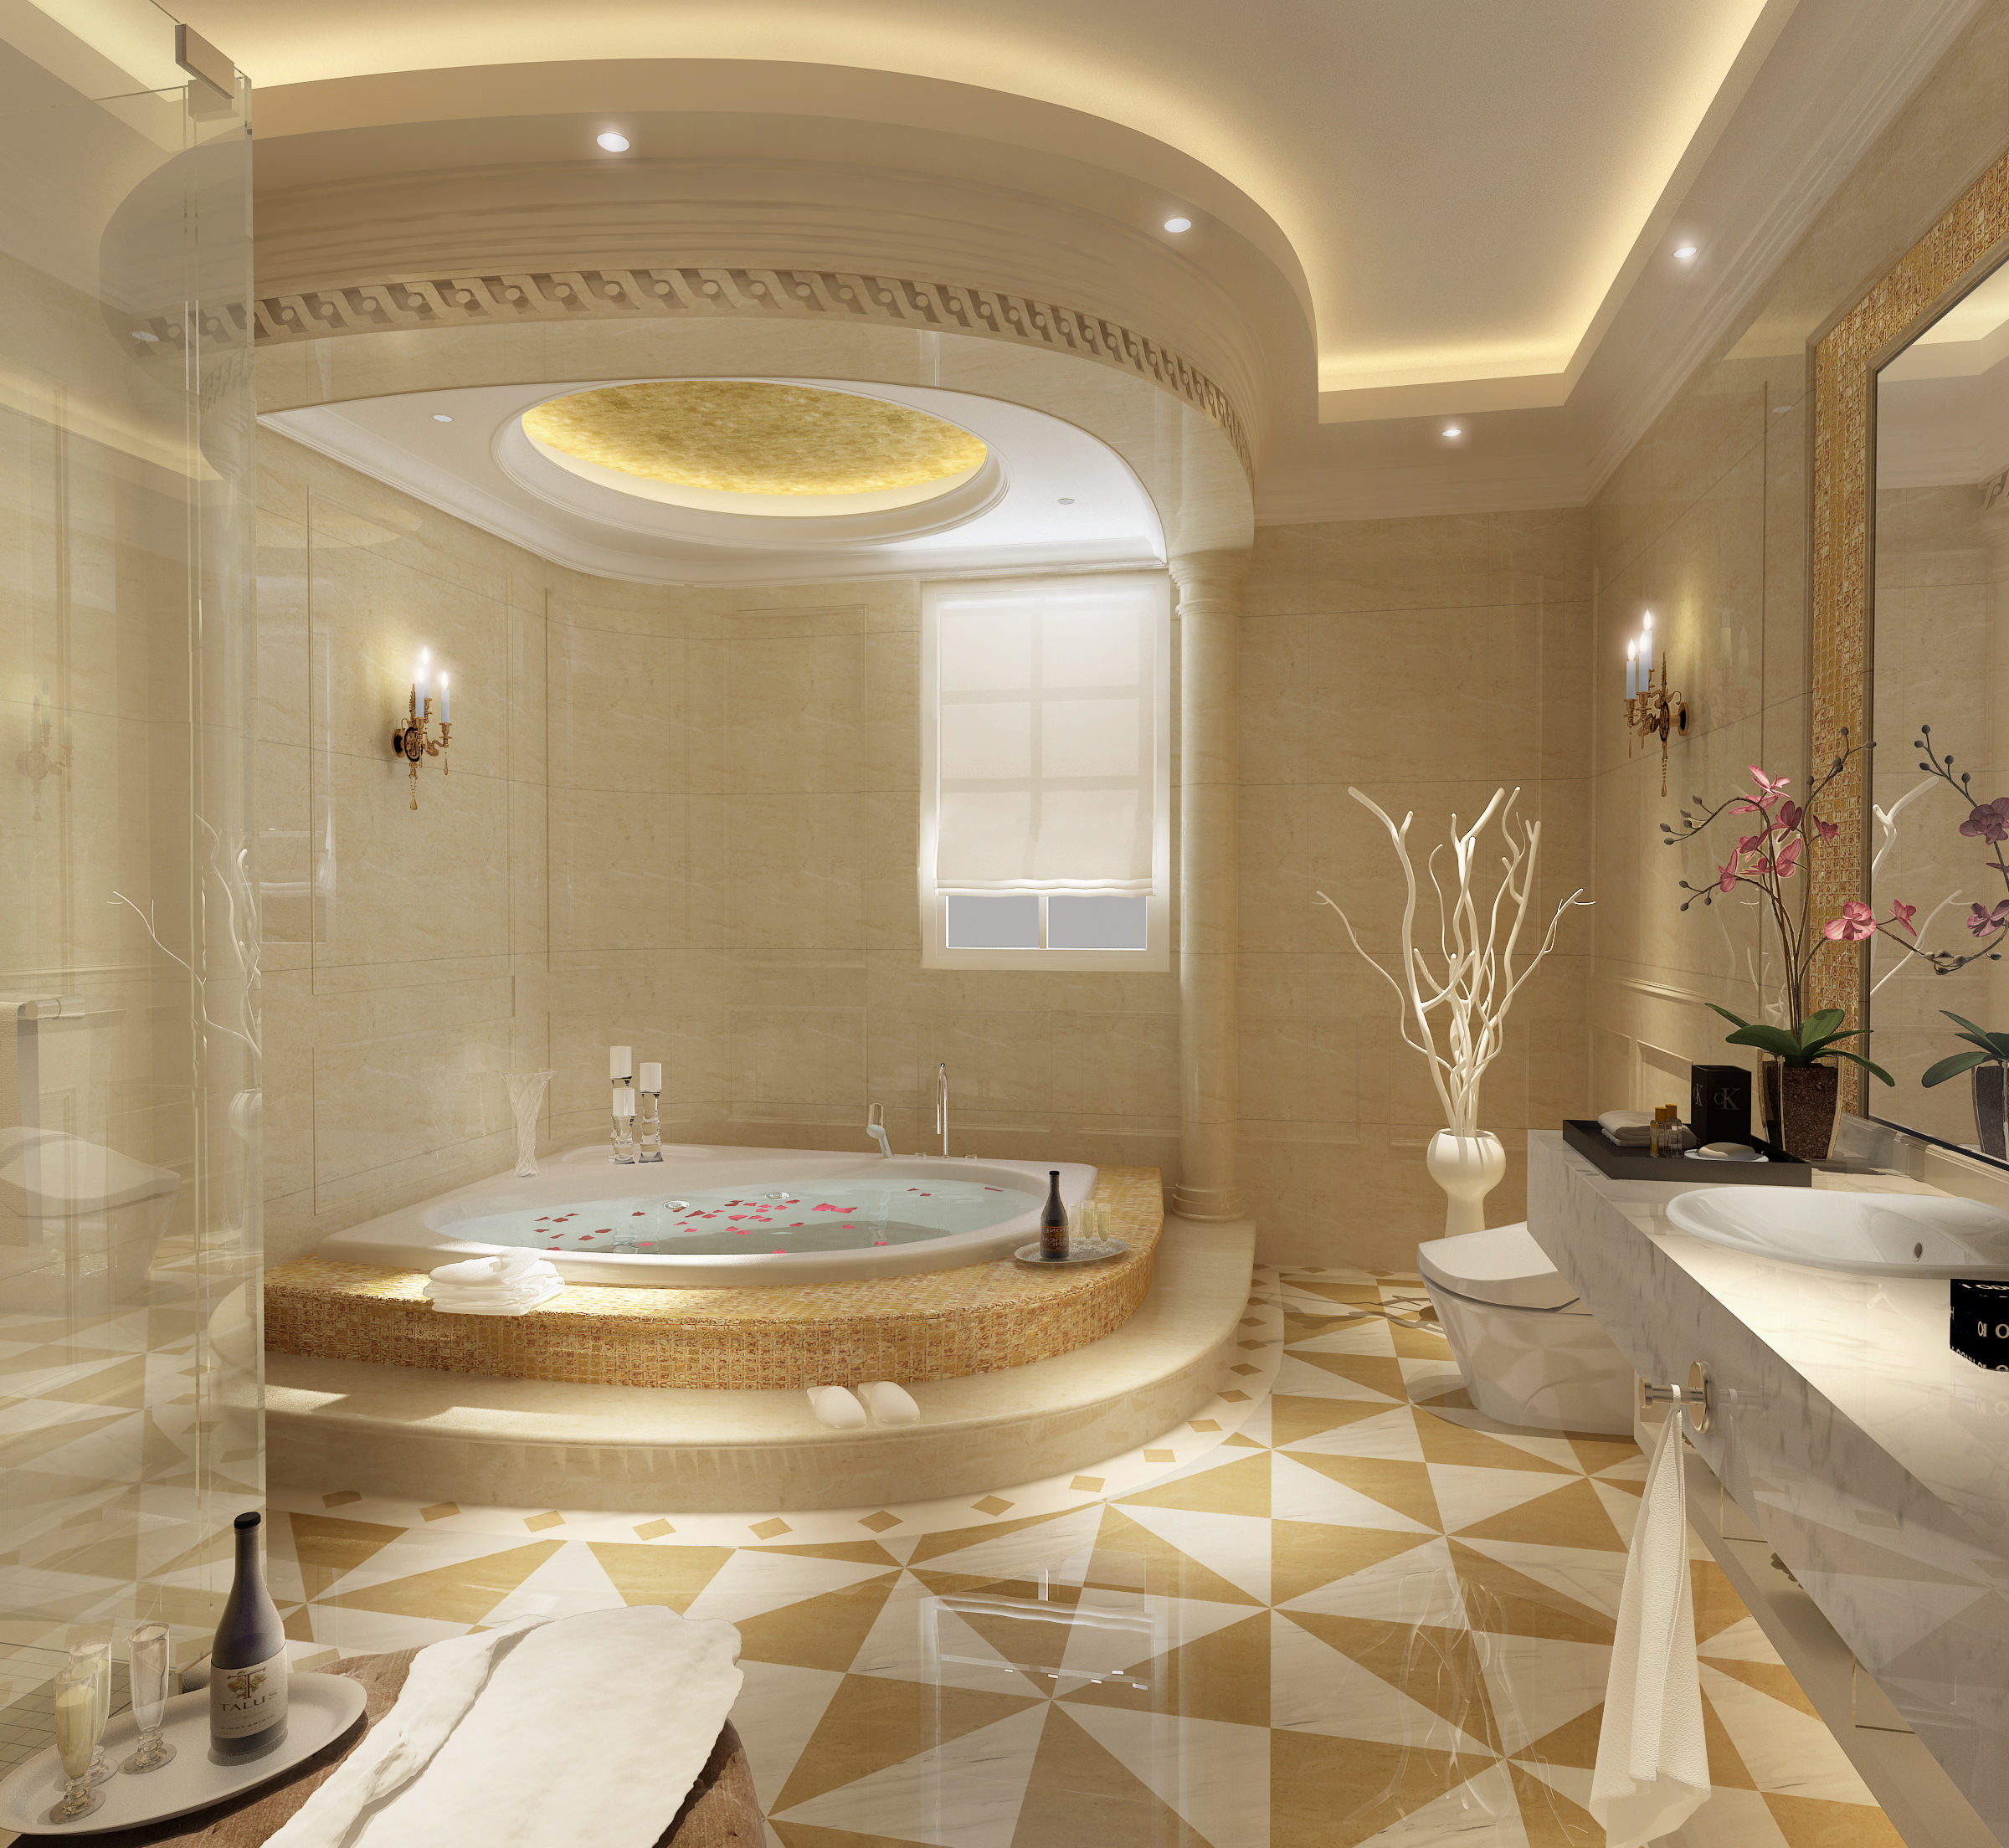 Bathroom 3d Model luxury bathroom 3d model | cgtrader